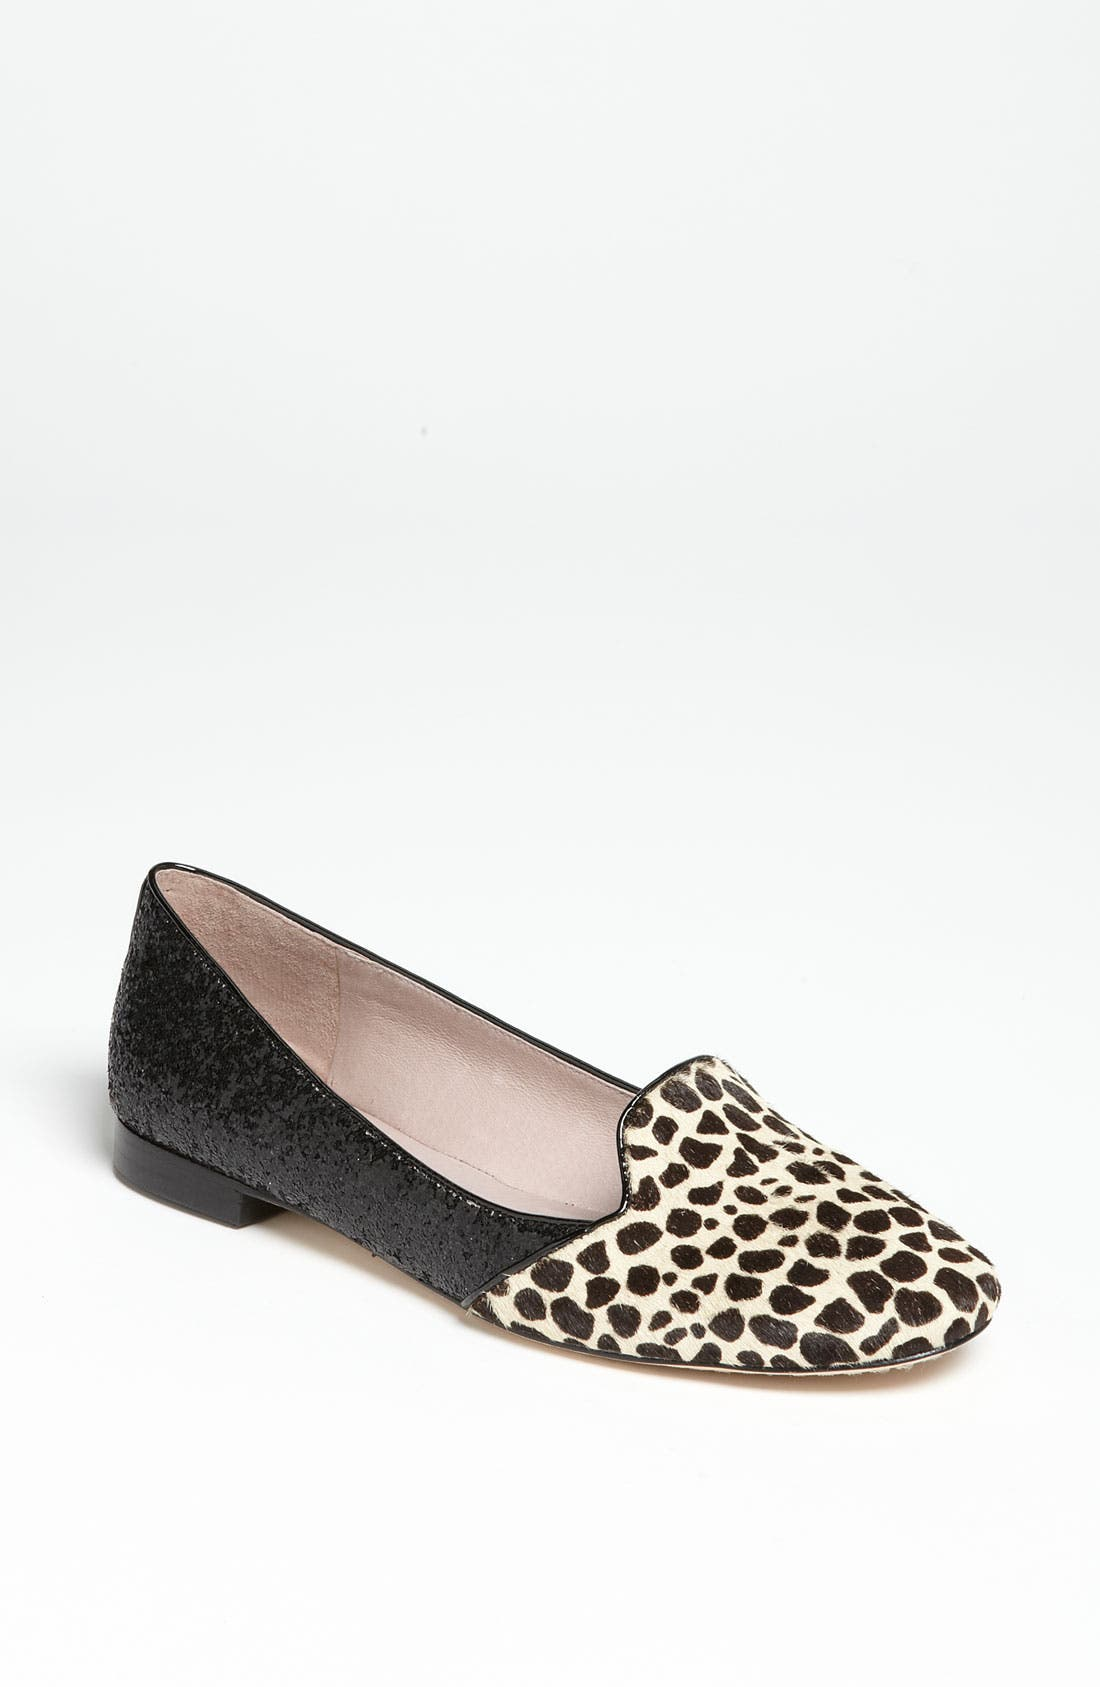 Alternate Image 1 Selected - Vince Camuto 'Lilliana 3' Flat